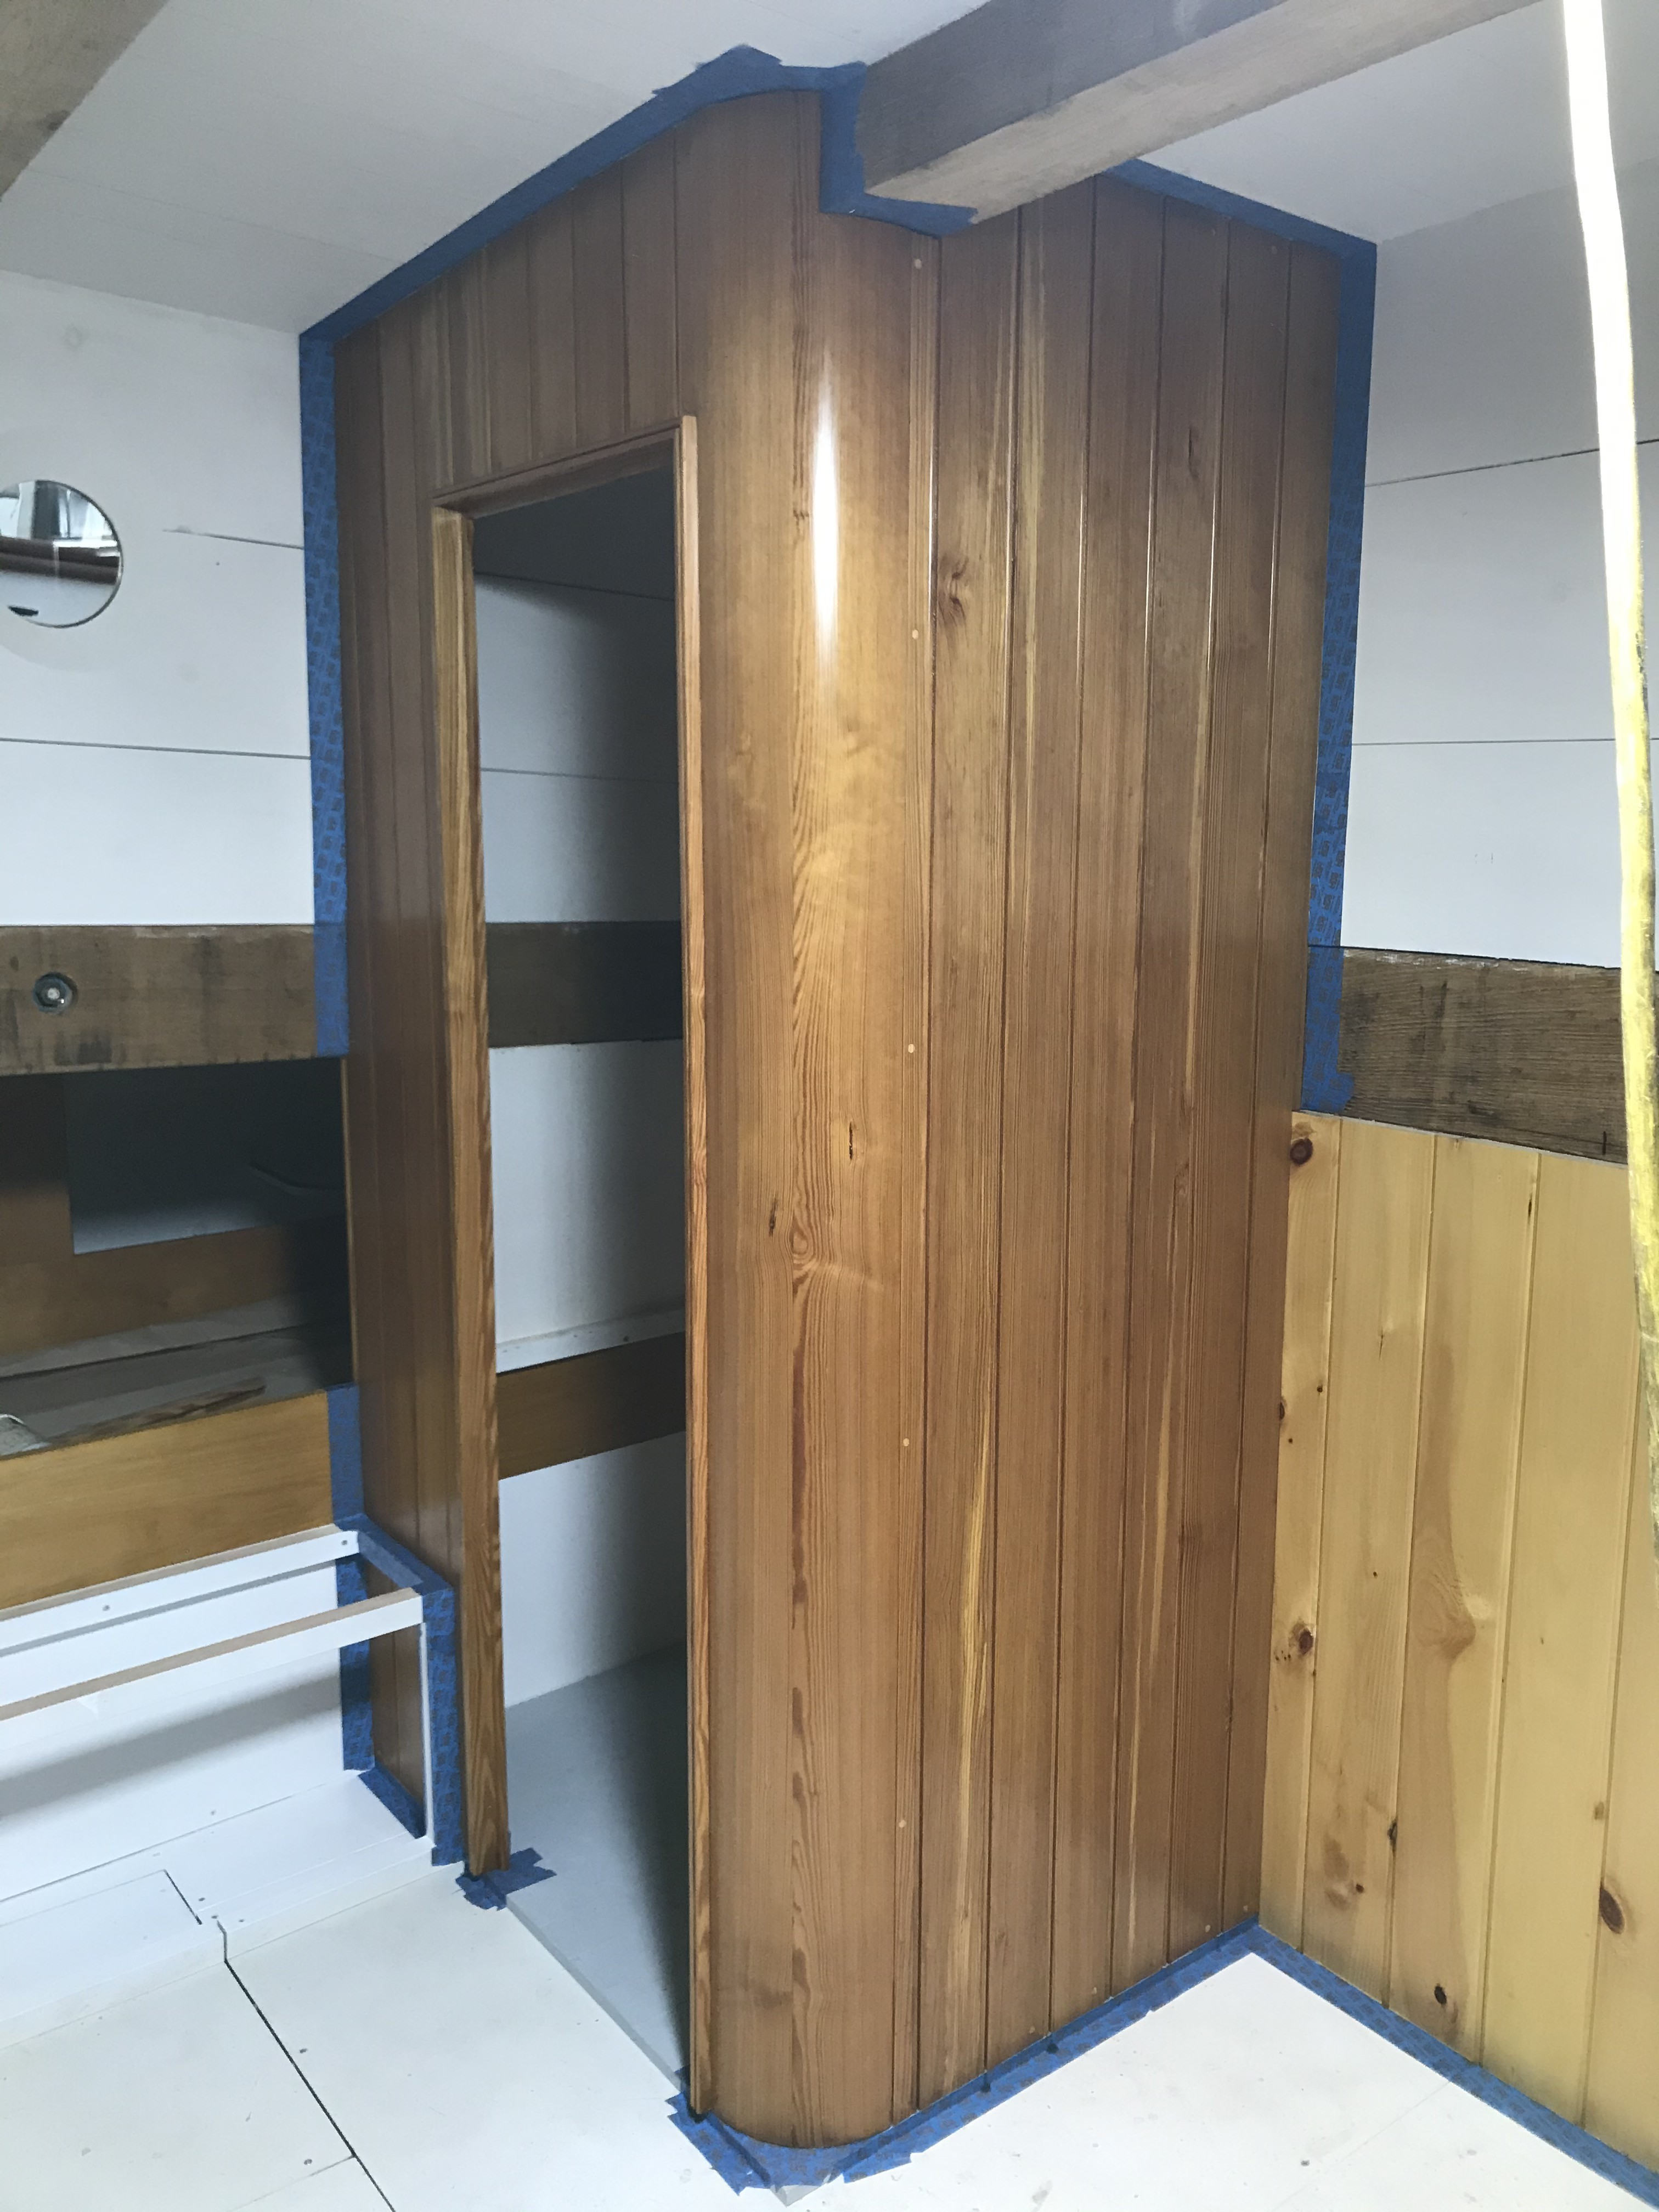 The Aft Cabin continues to come together.  This image shows the first coat of polyurethane applied to the beautifully constructed head enclosure.  Next week, we expect to see the custom louvered door hung in place to complete the installation.